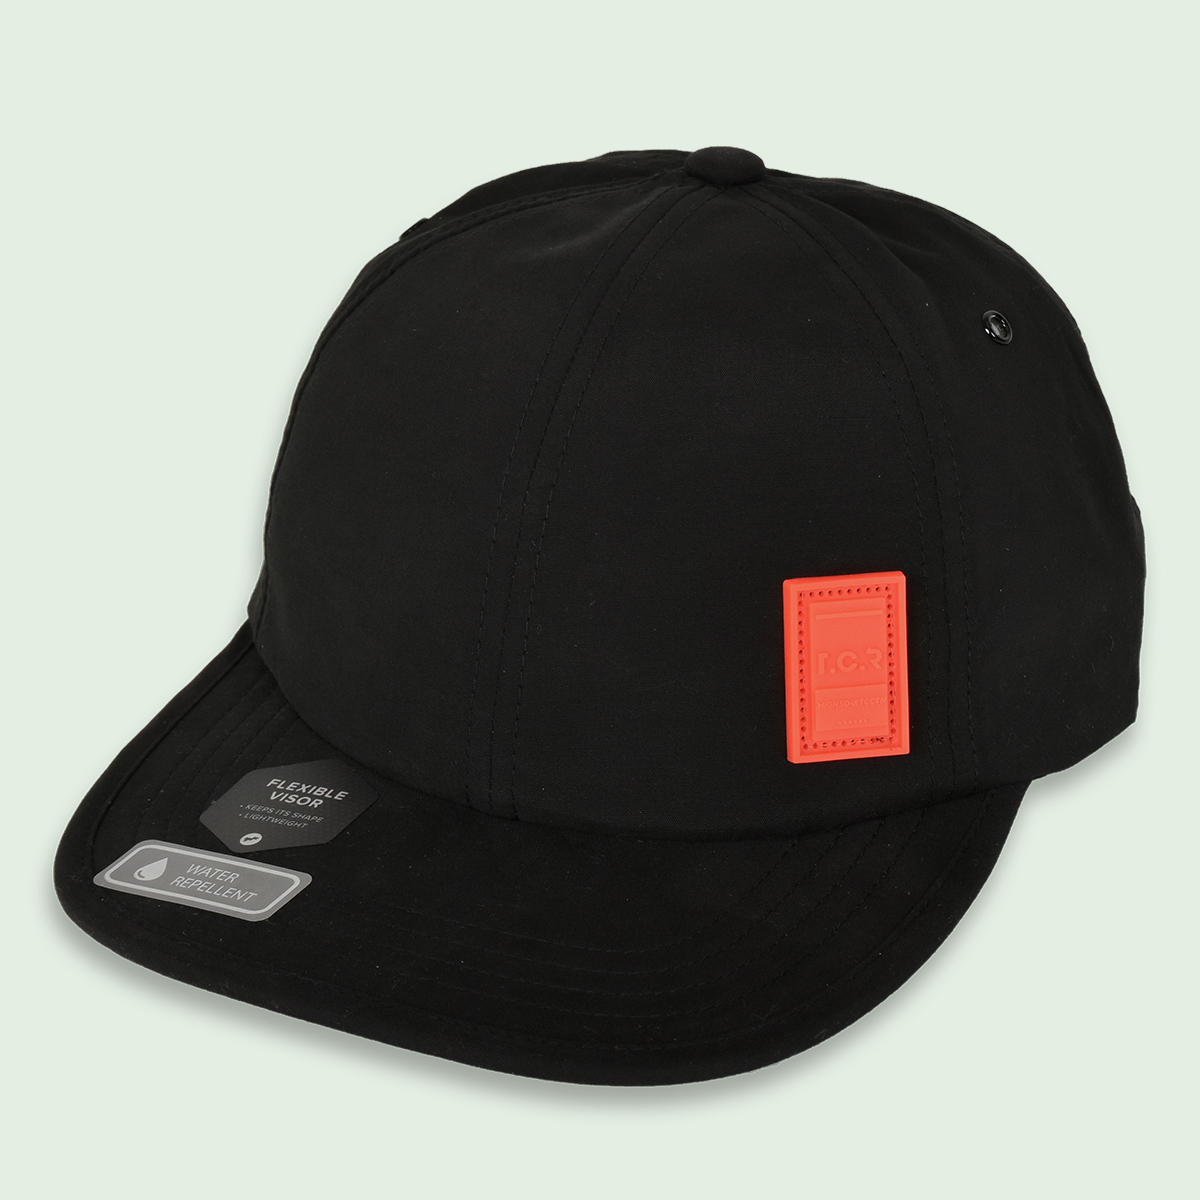 RUBBER LOGO WATER REPELLENT 6-PANEL CAP - BLACK/NEON ORANGE